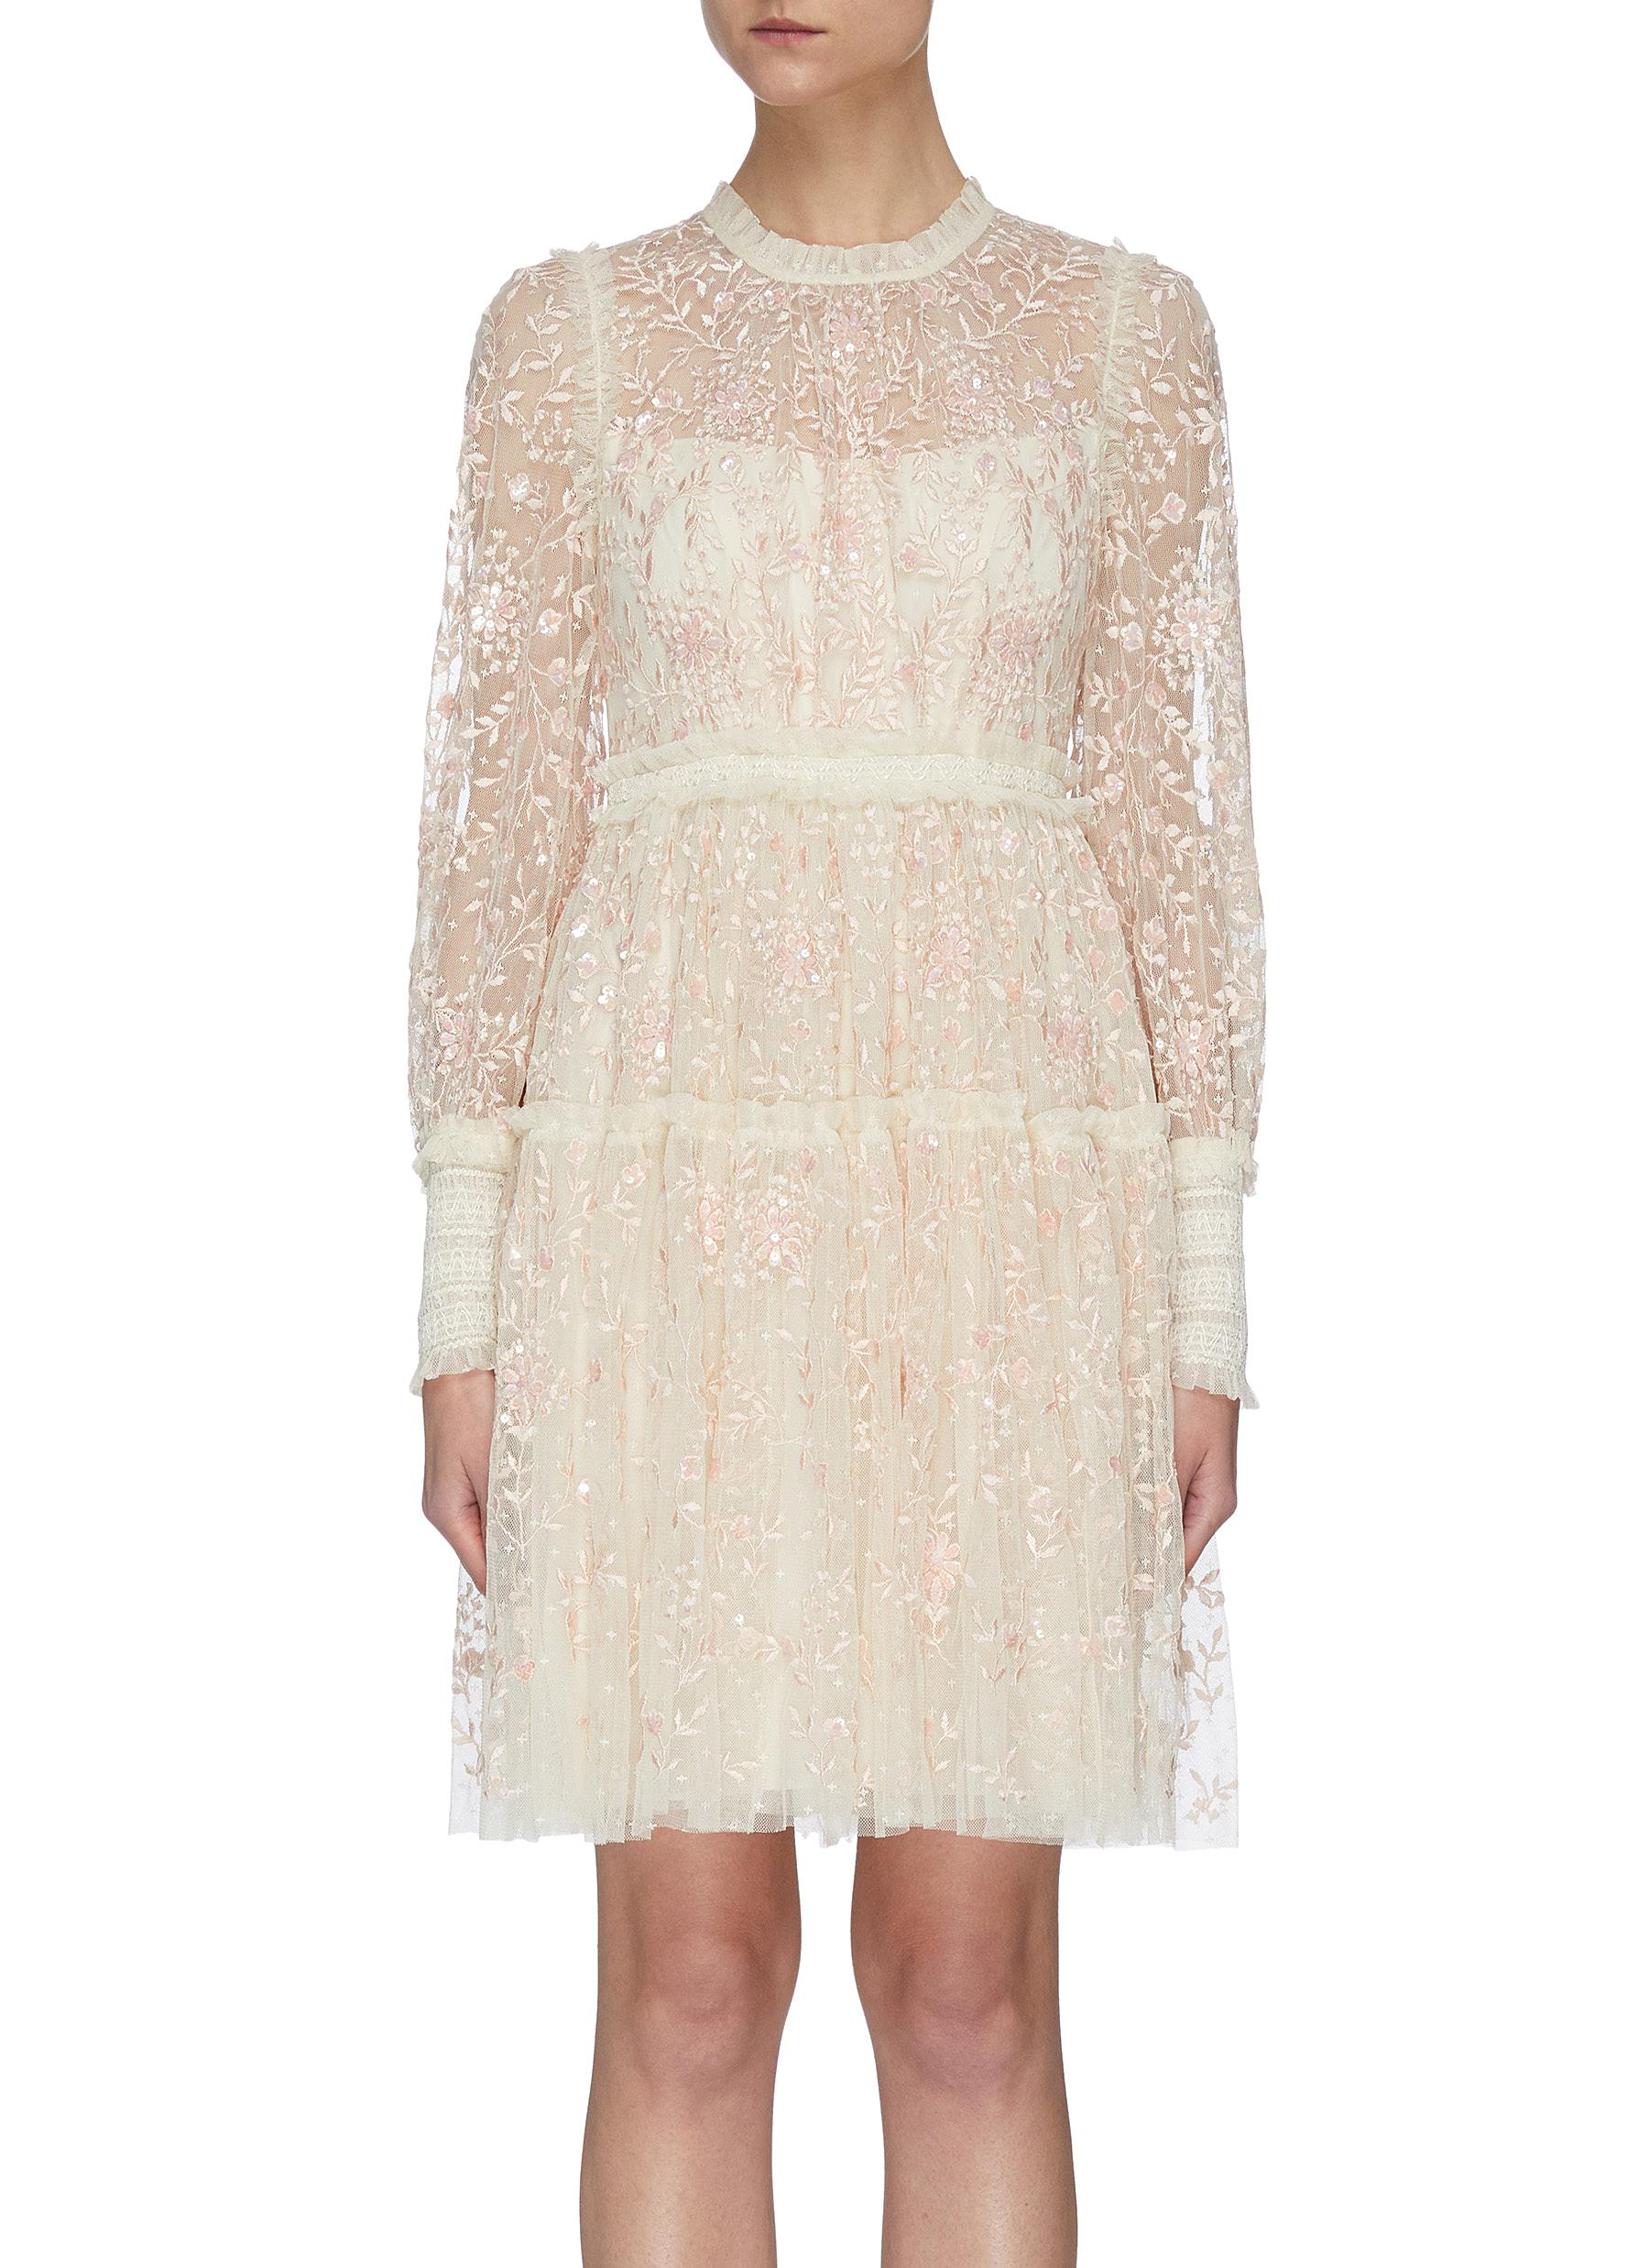 Buy Needle & Thread Dresses 'Whitethorn' Mini Dress